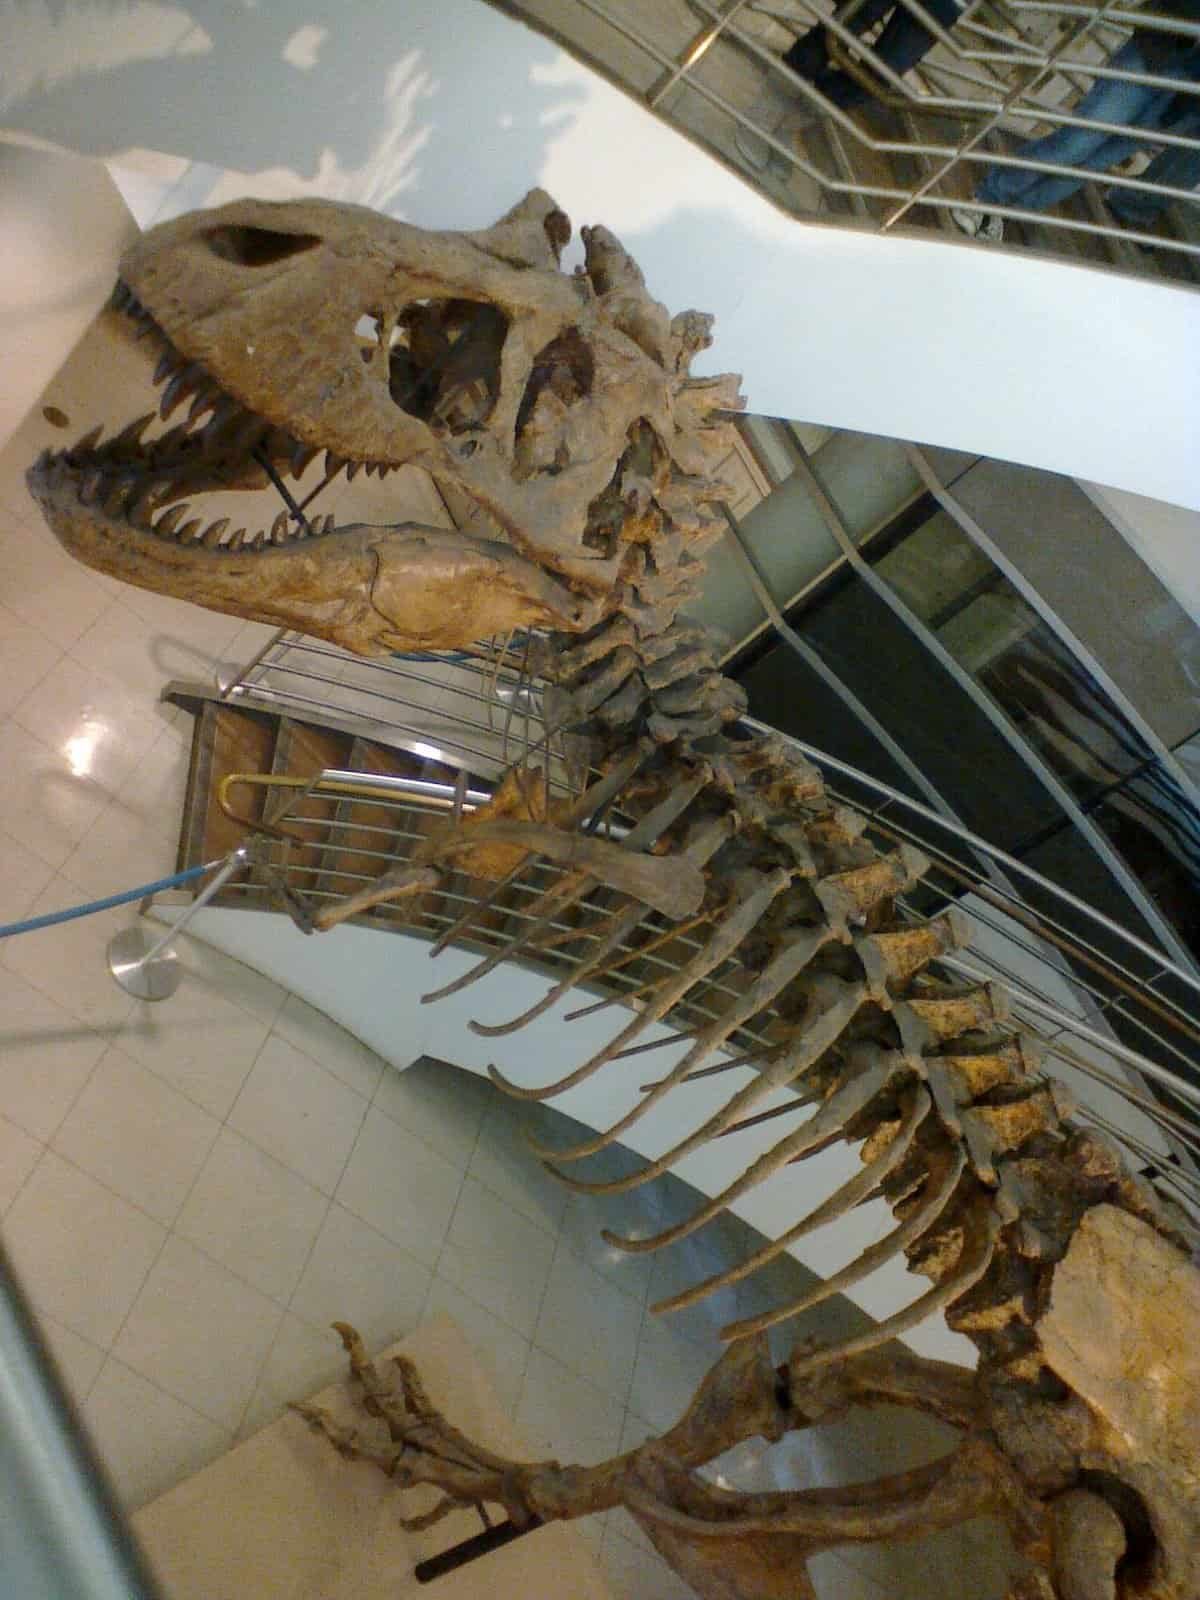 T-Rex skeleton in the Valley Science Building at UC Berkeley